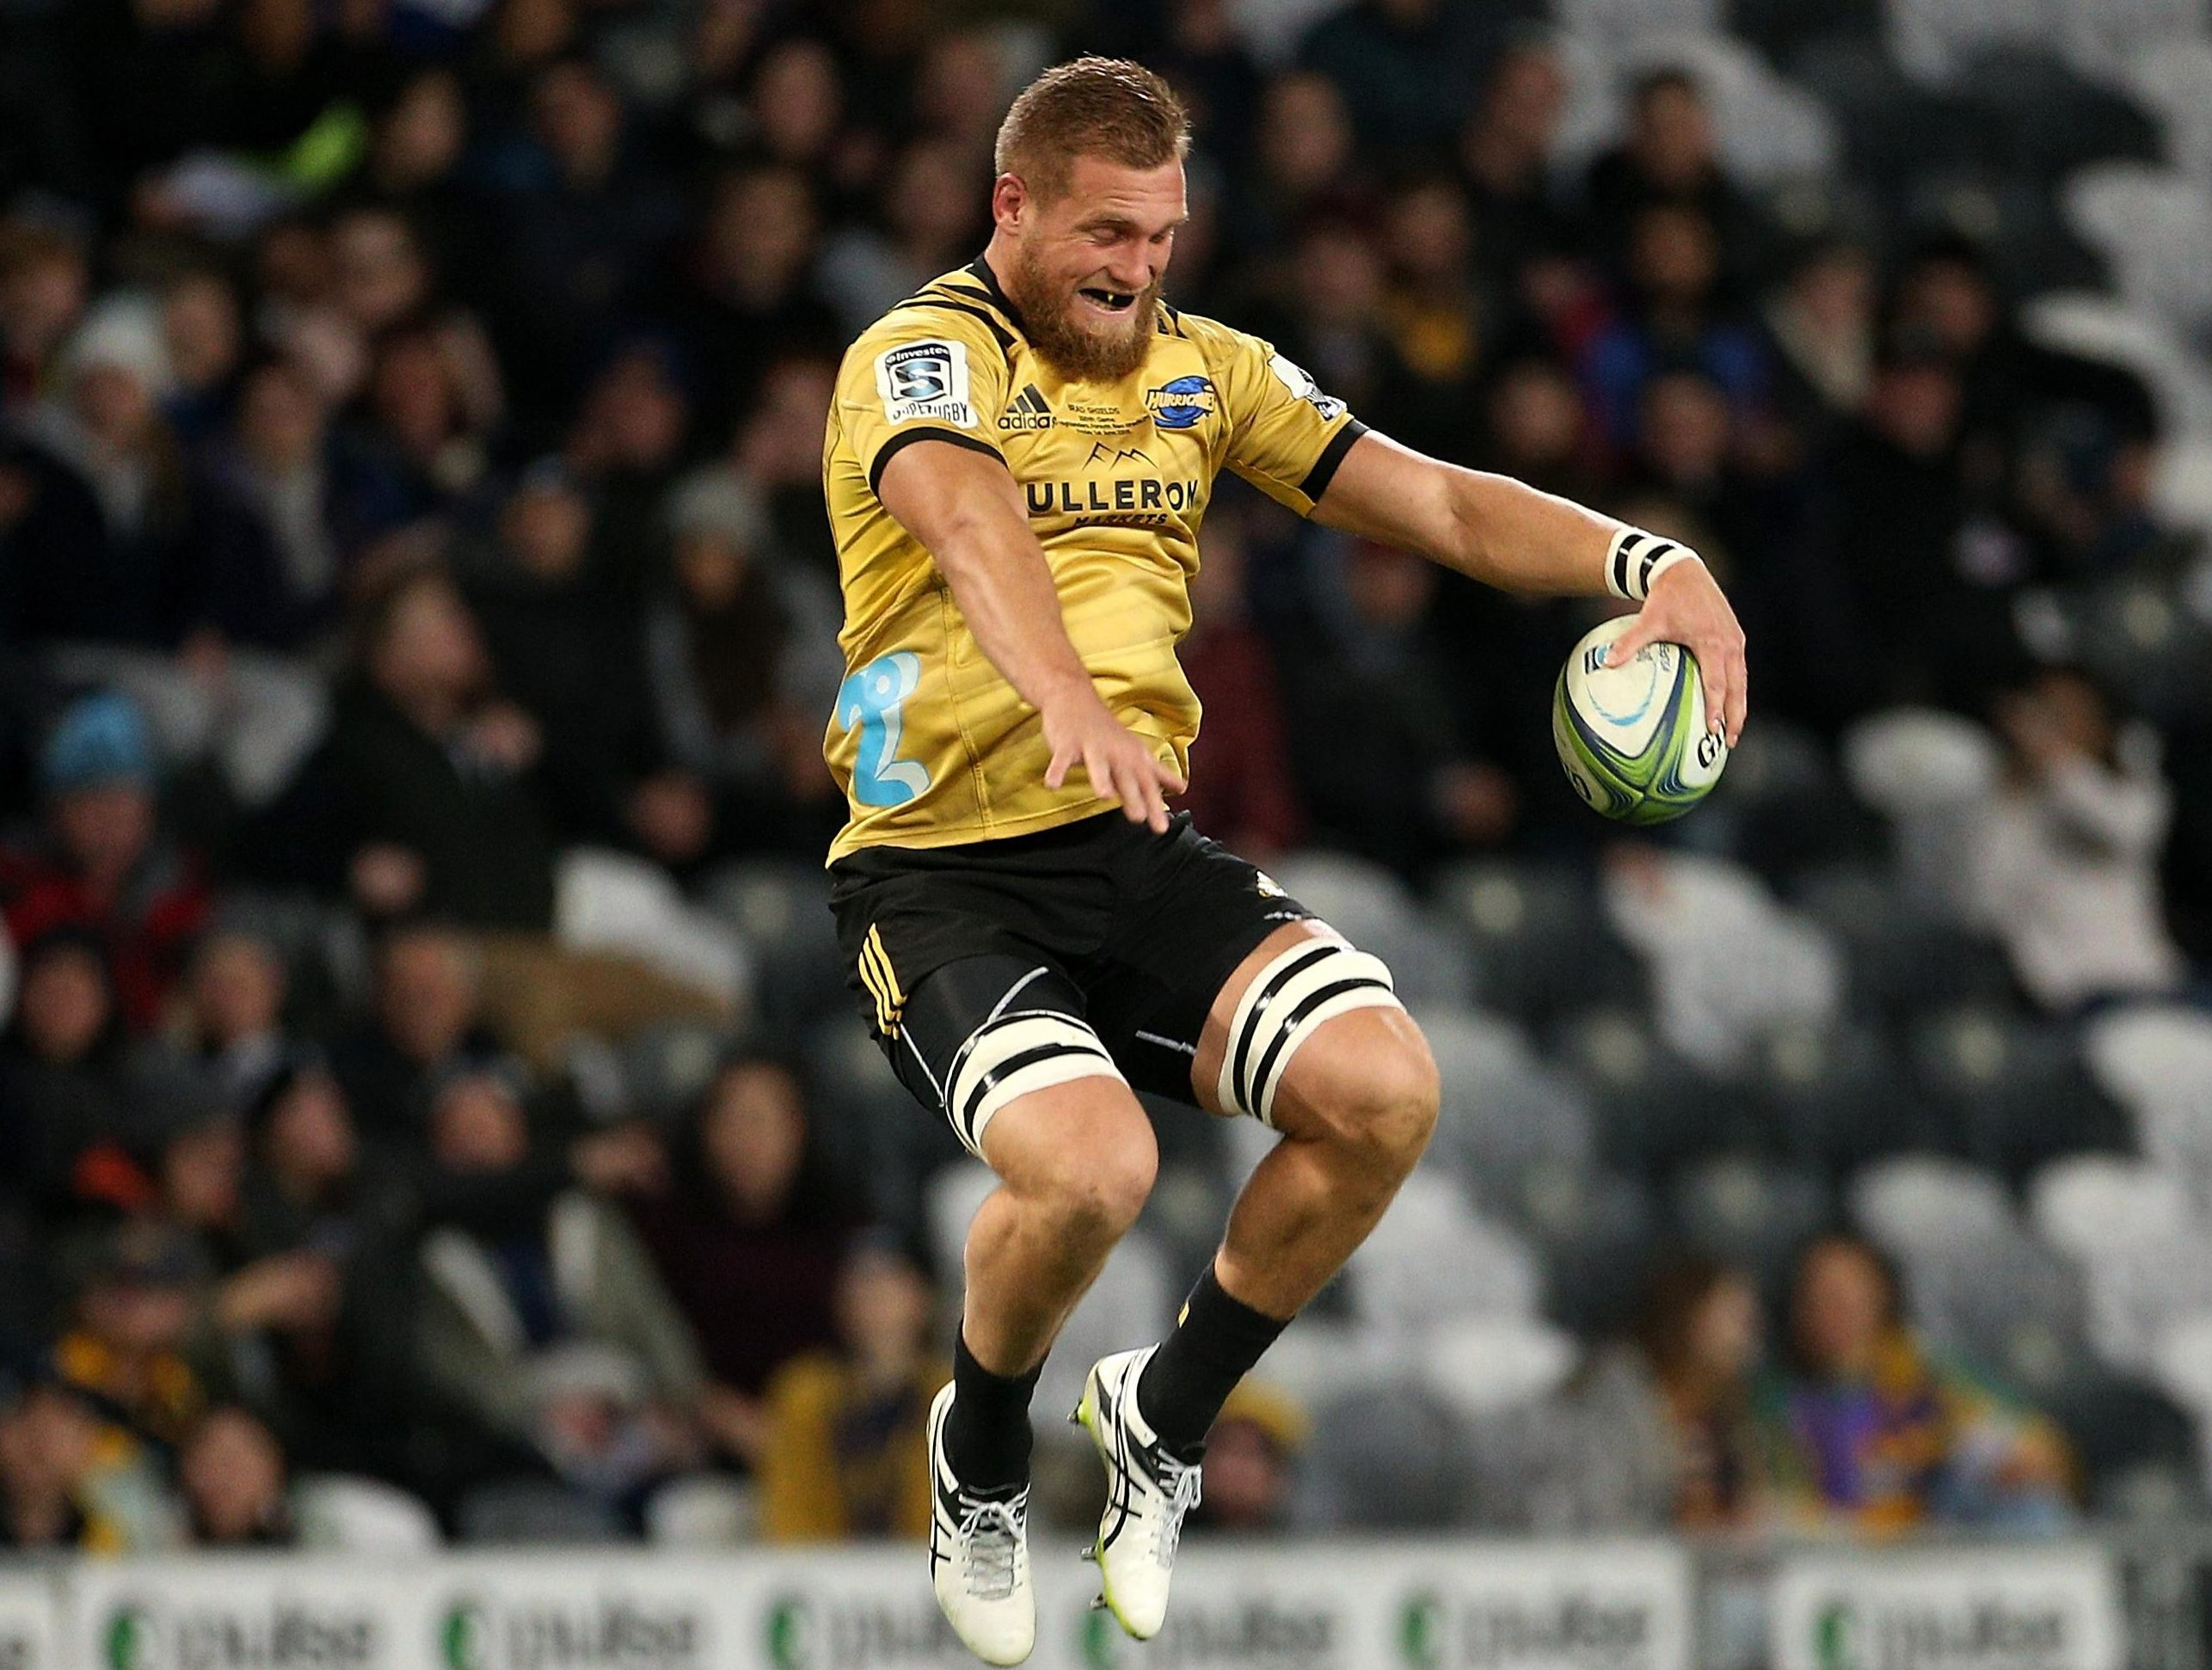 The RFU paid to buy out Brad Shields contract so he could join Wasps